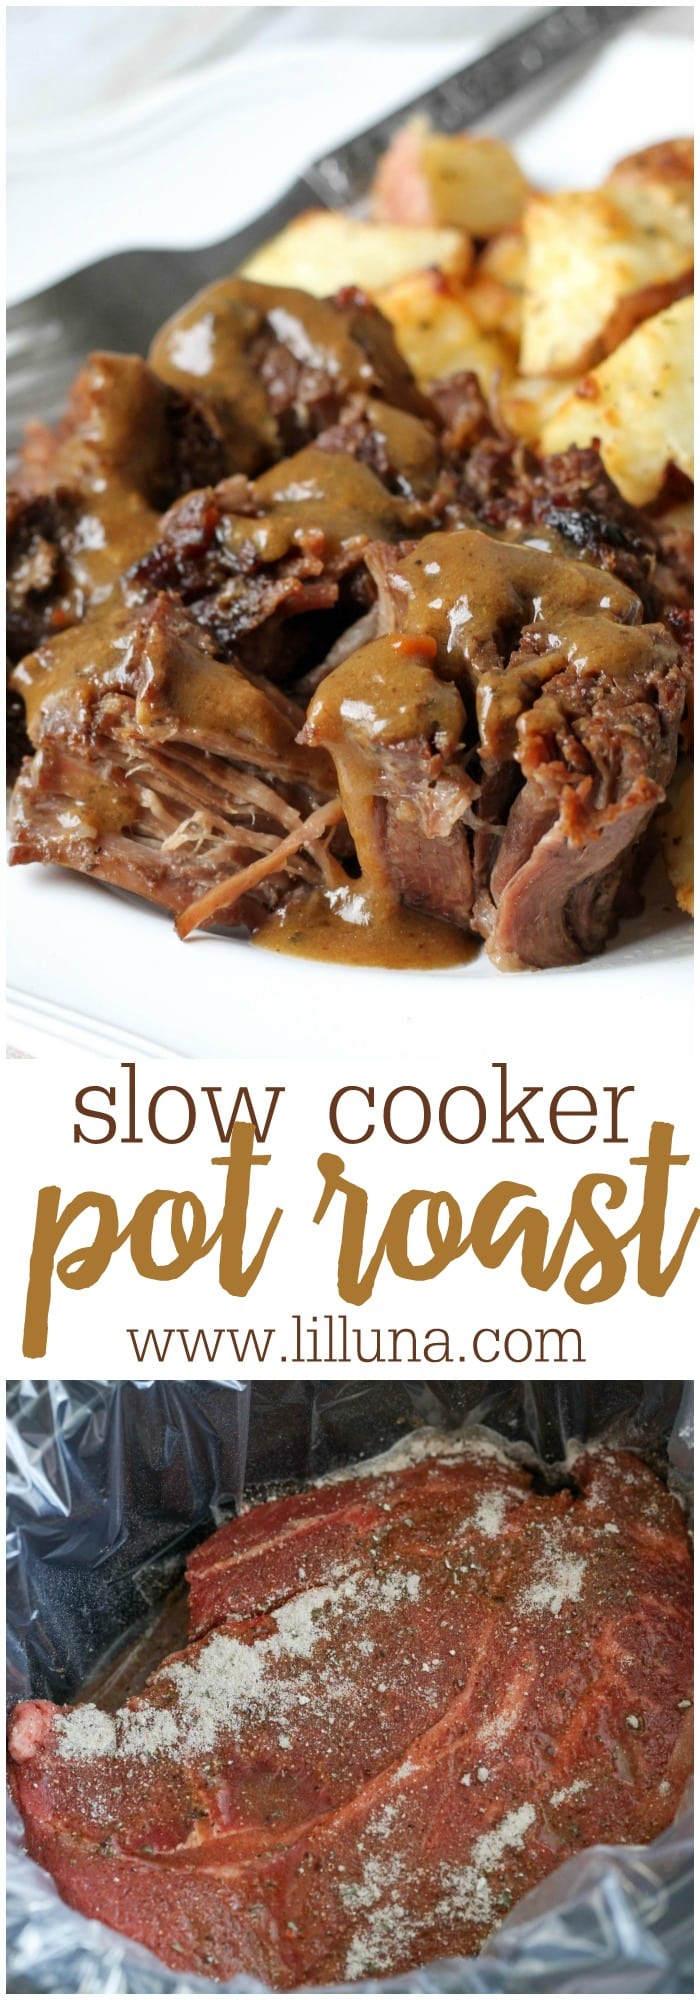 Slow Cooker Pot Roast Recipe - Just 4 Ingredients! | Lil' Luna